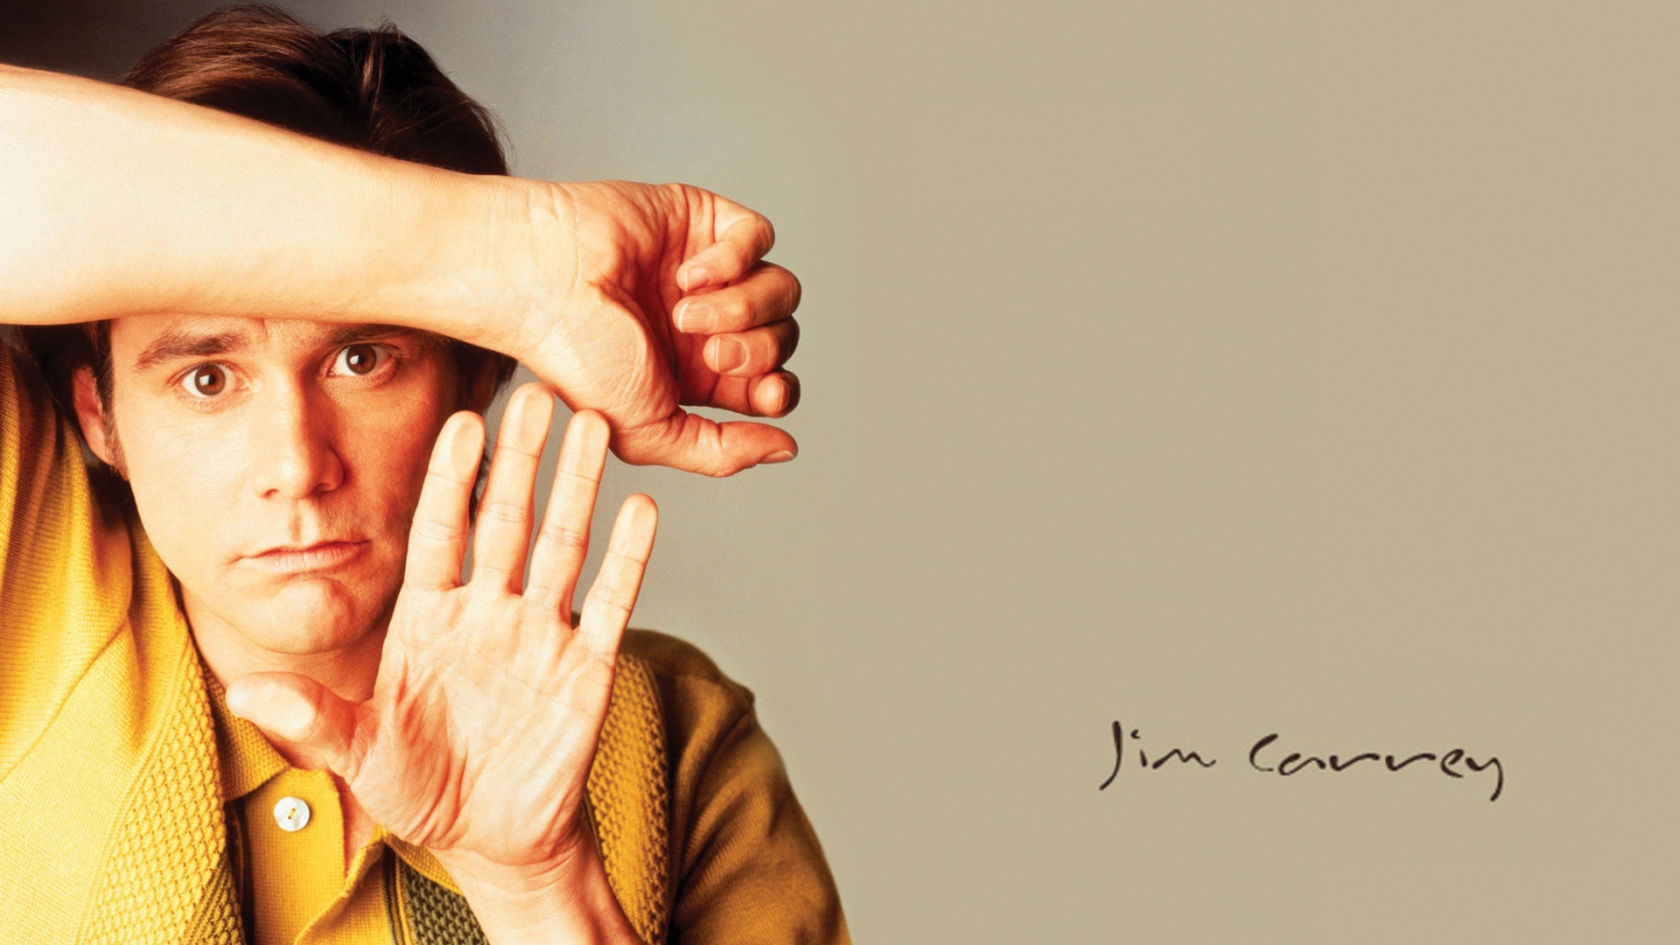 Jim Carrey for 1680 x 945 HDTV resolution